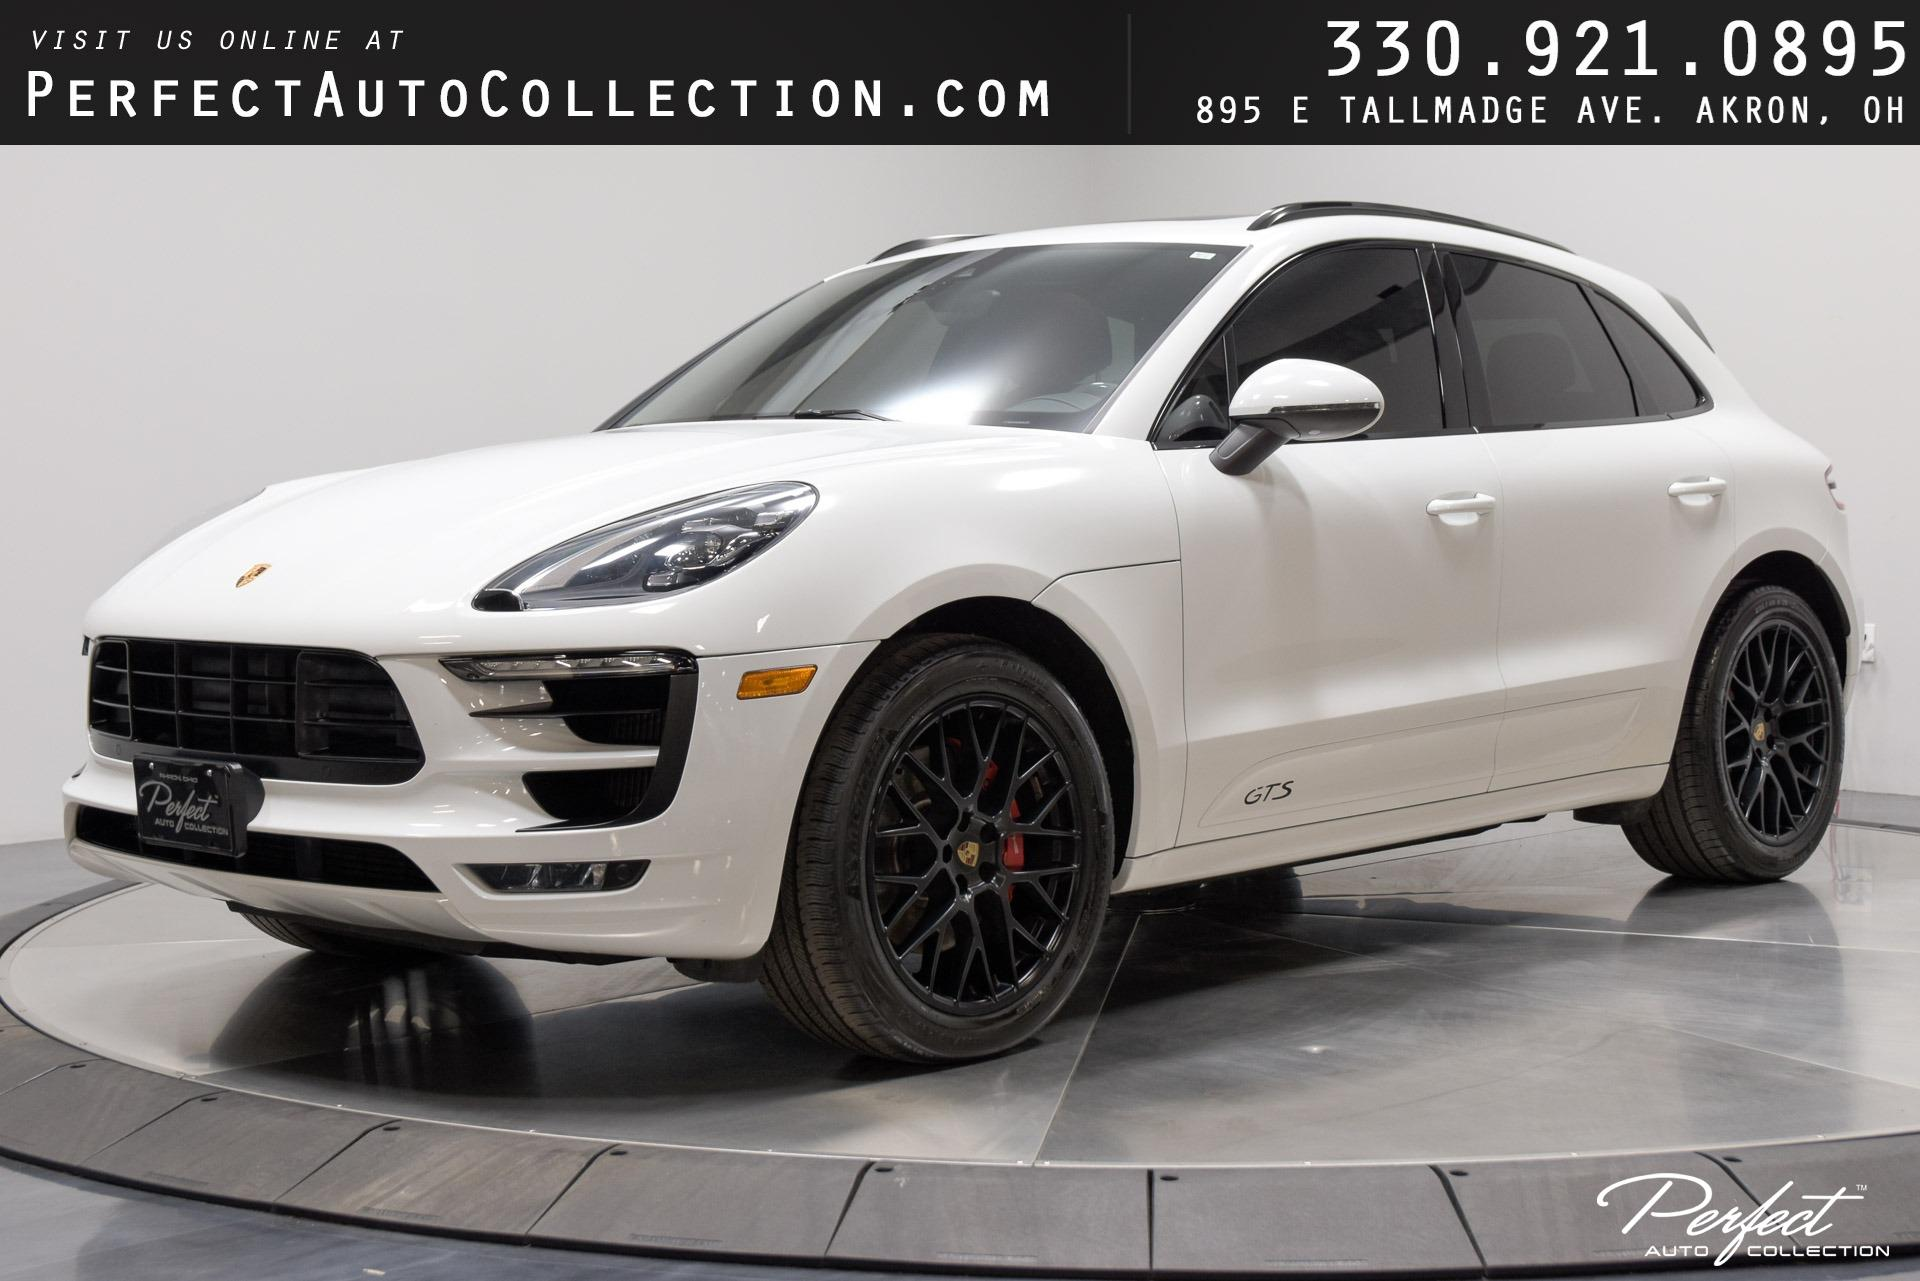 Used 2017 Porsche Macan GTS for sale $58,995 at Perfect Auto Collection in Akron OH 44310 1